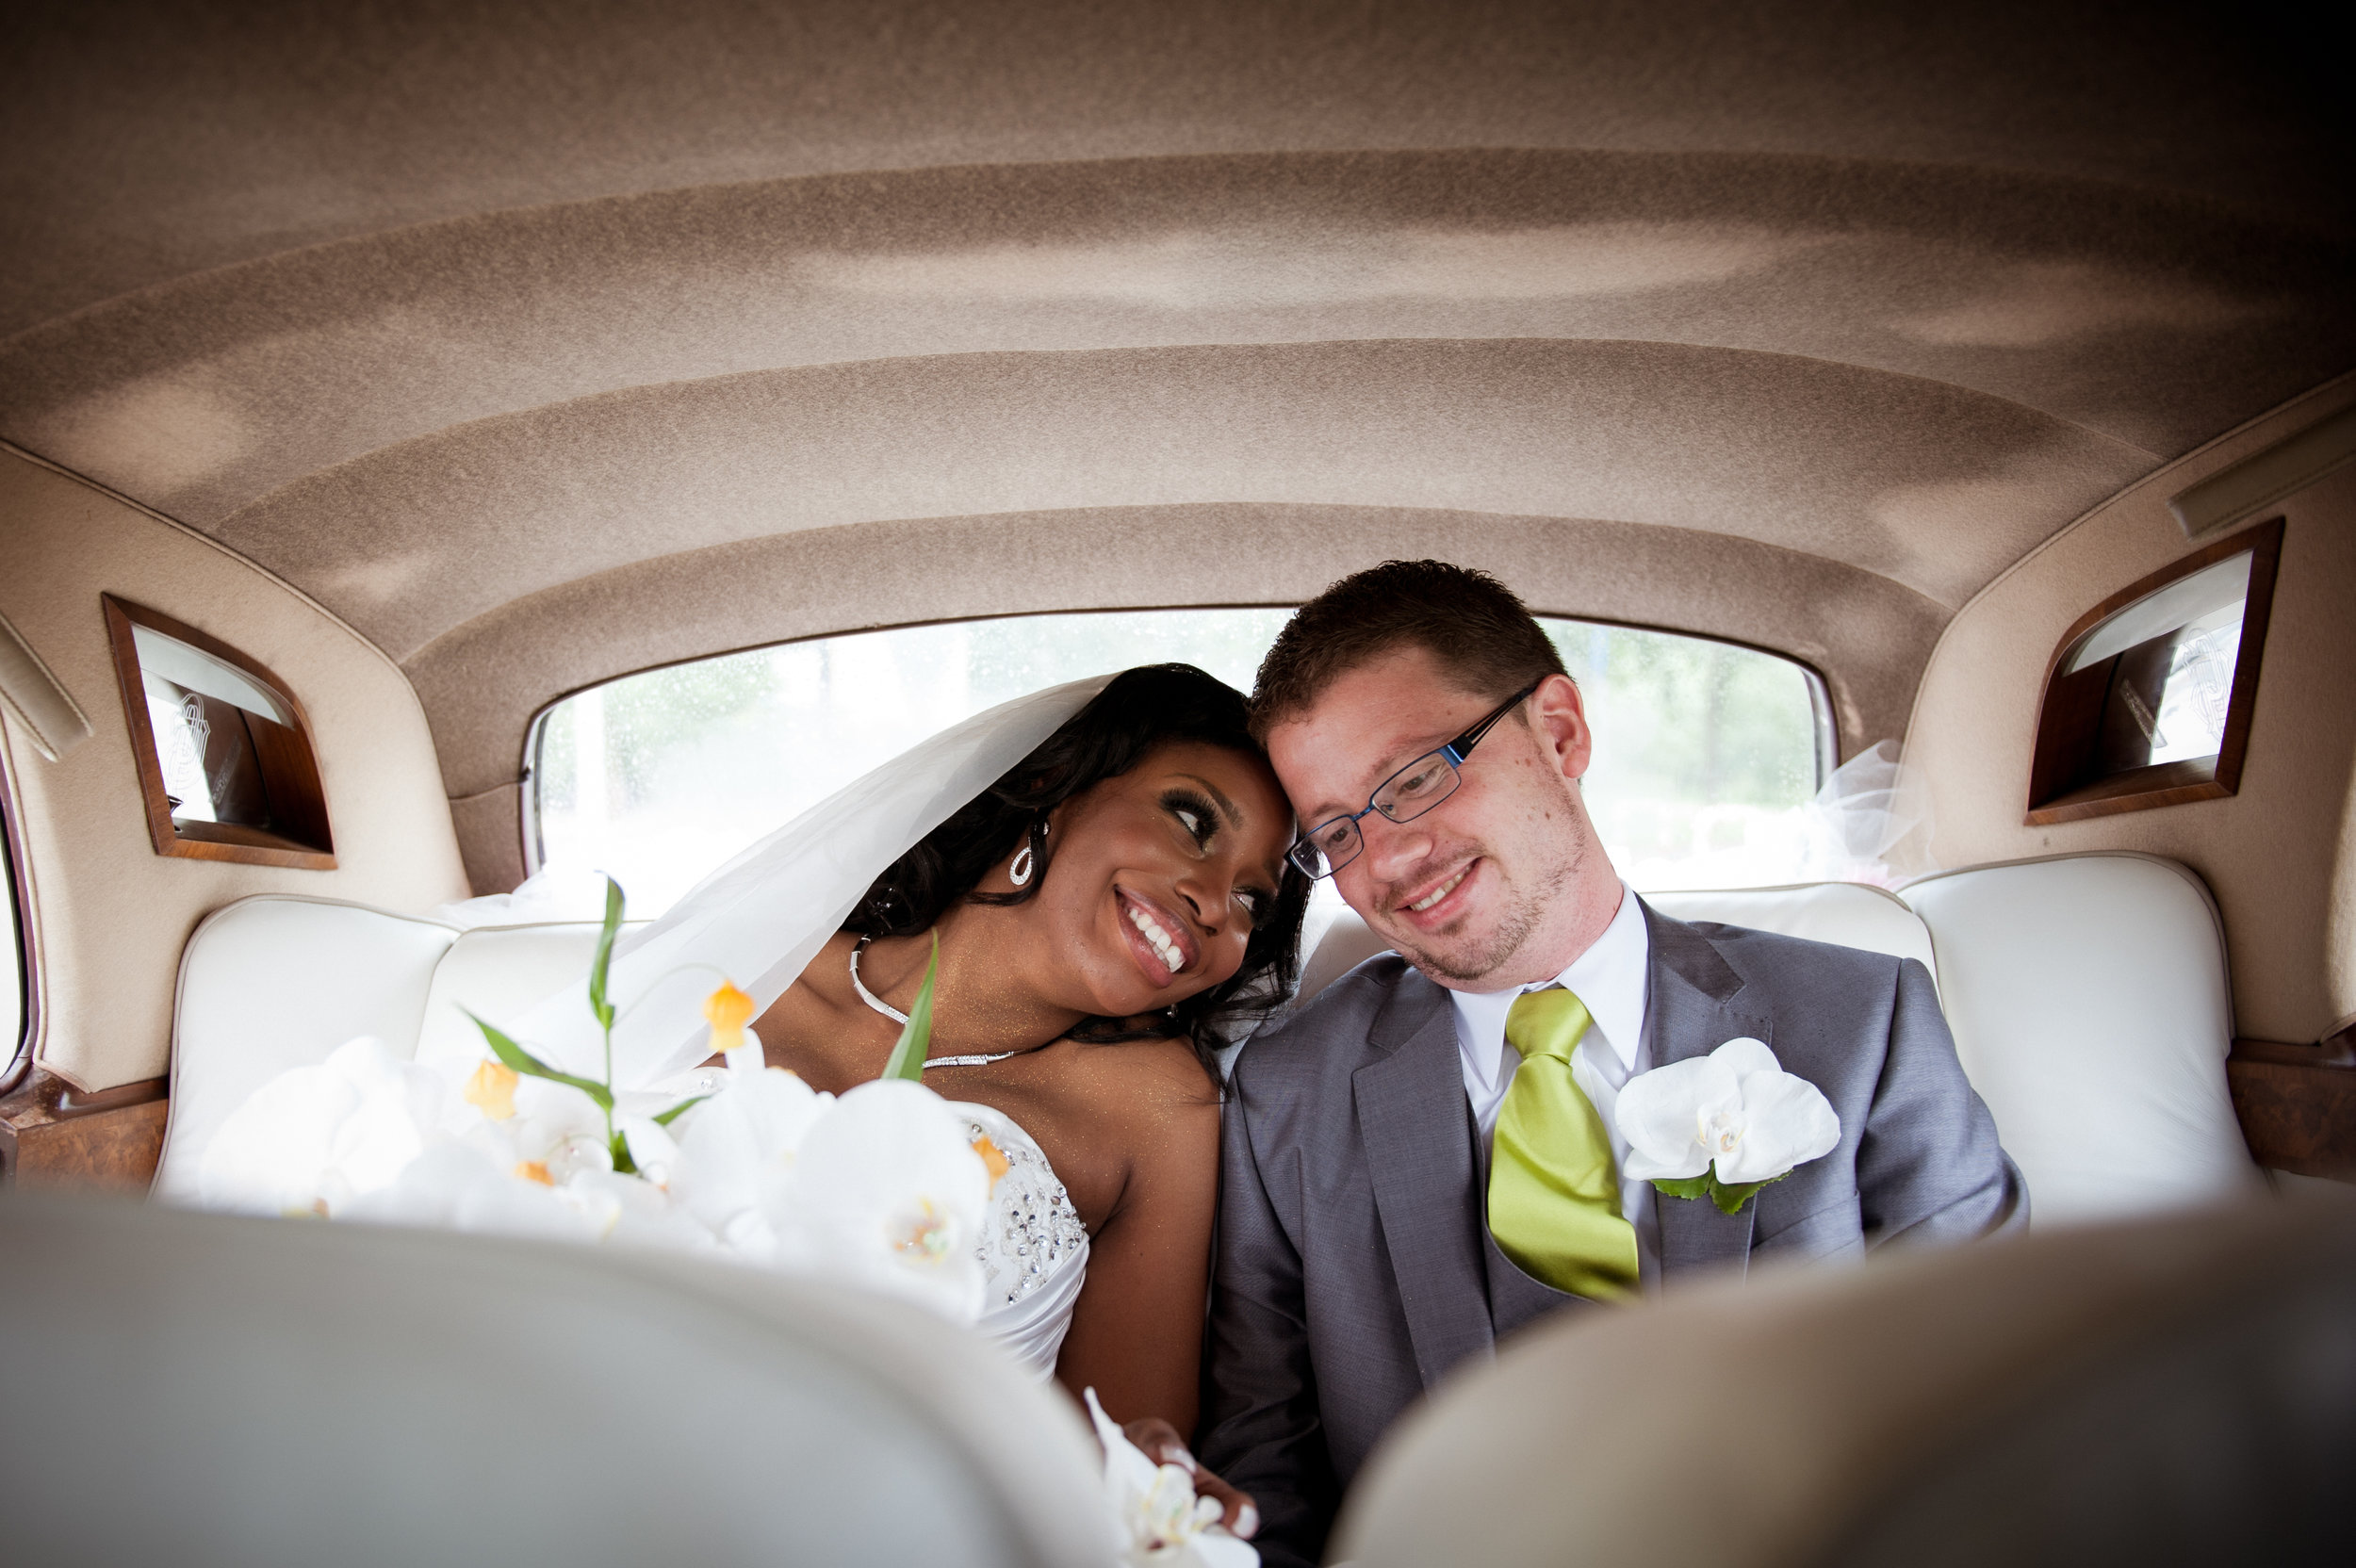 Weddings - From your Bachelor or Bachelorette party to the rehearsal dinner to the big day, we can handle every occasion to ensure you, your family and your guests get where they need to go safely and on time.